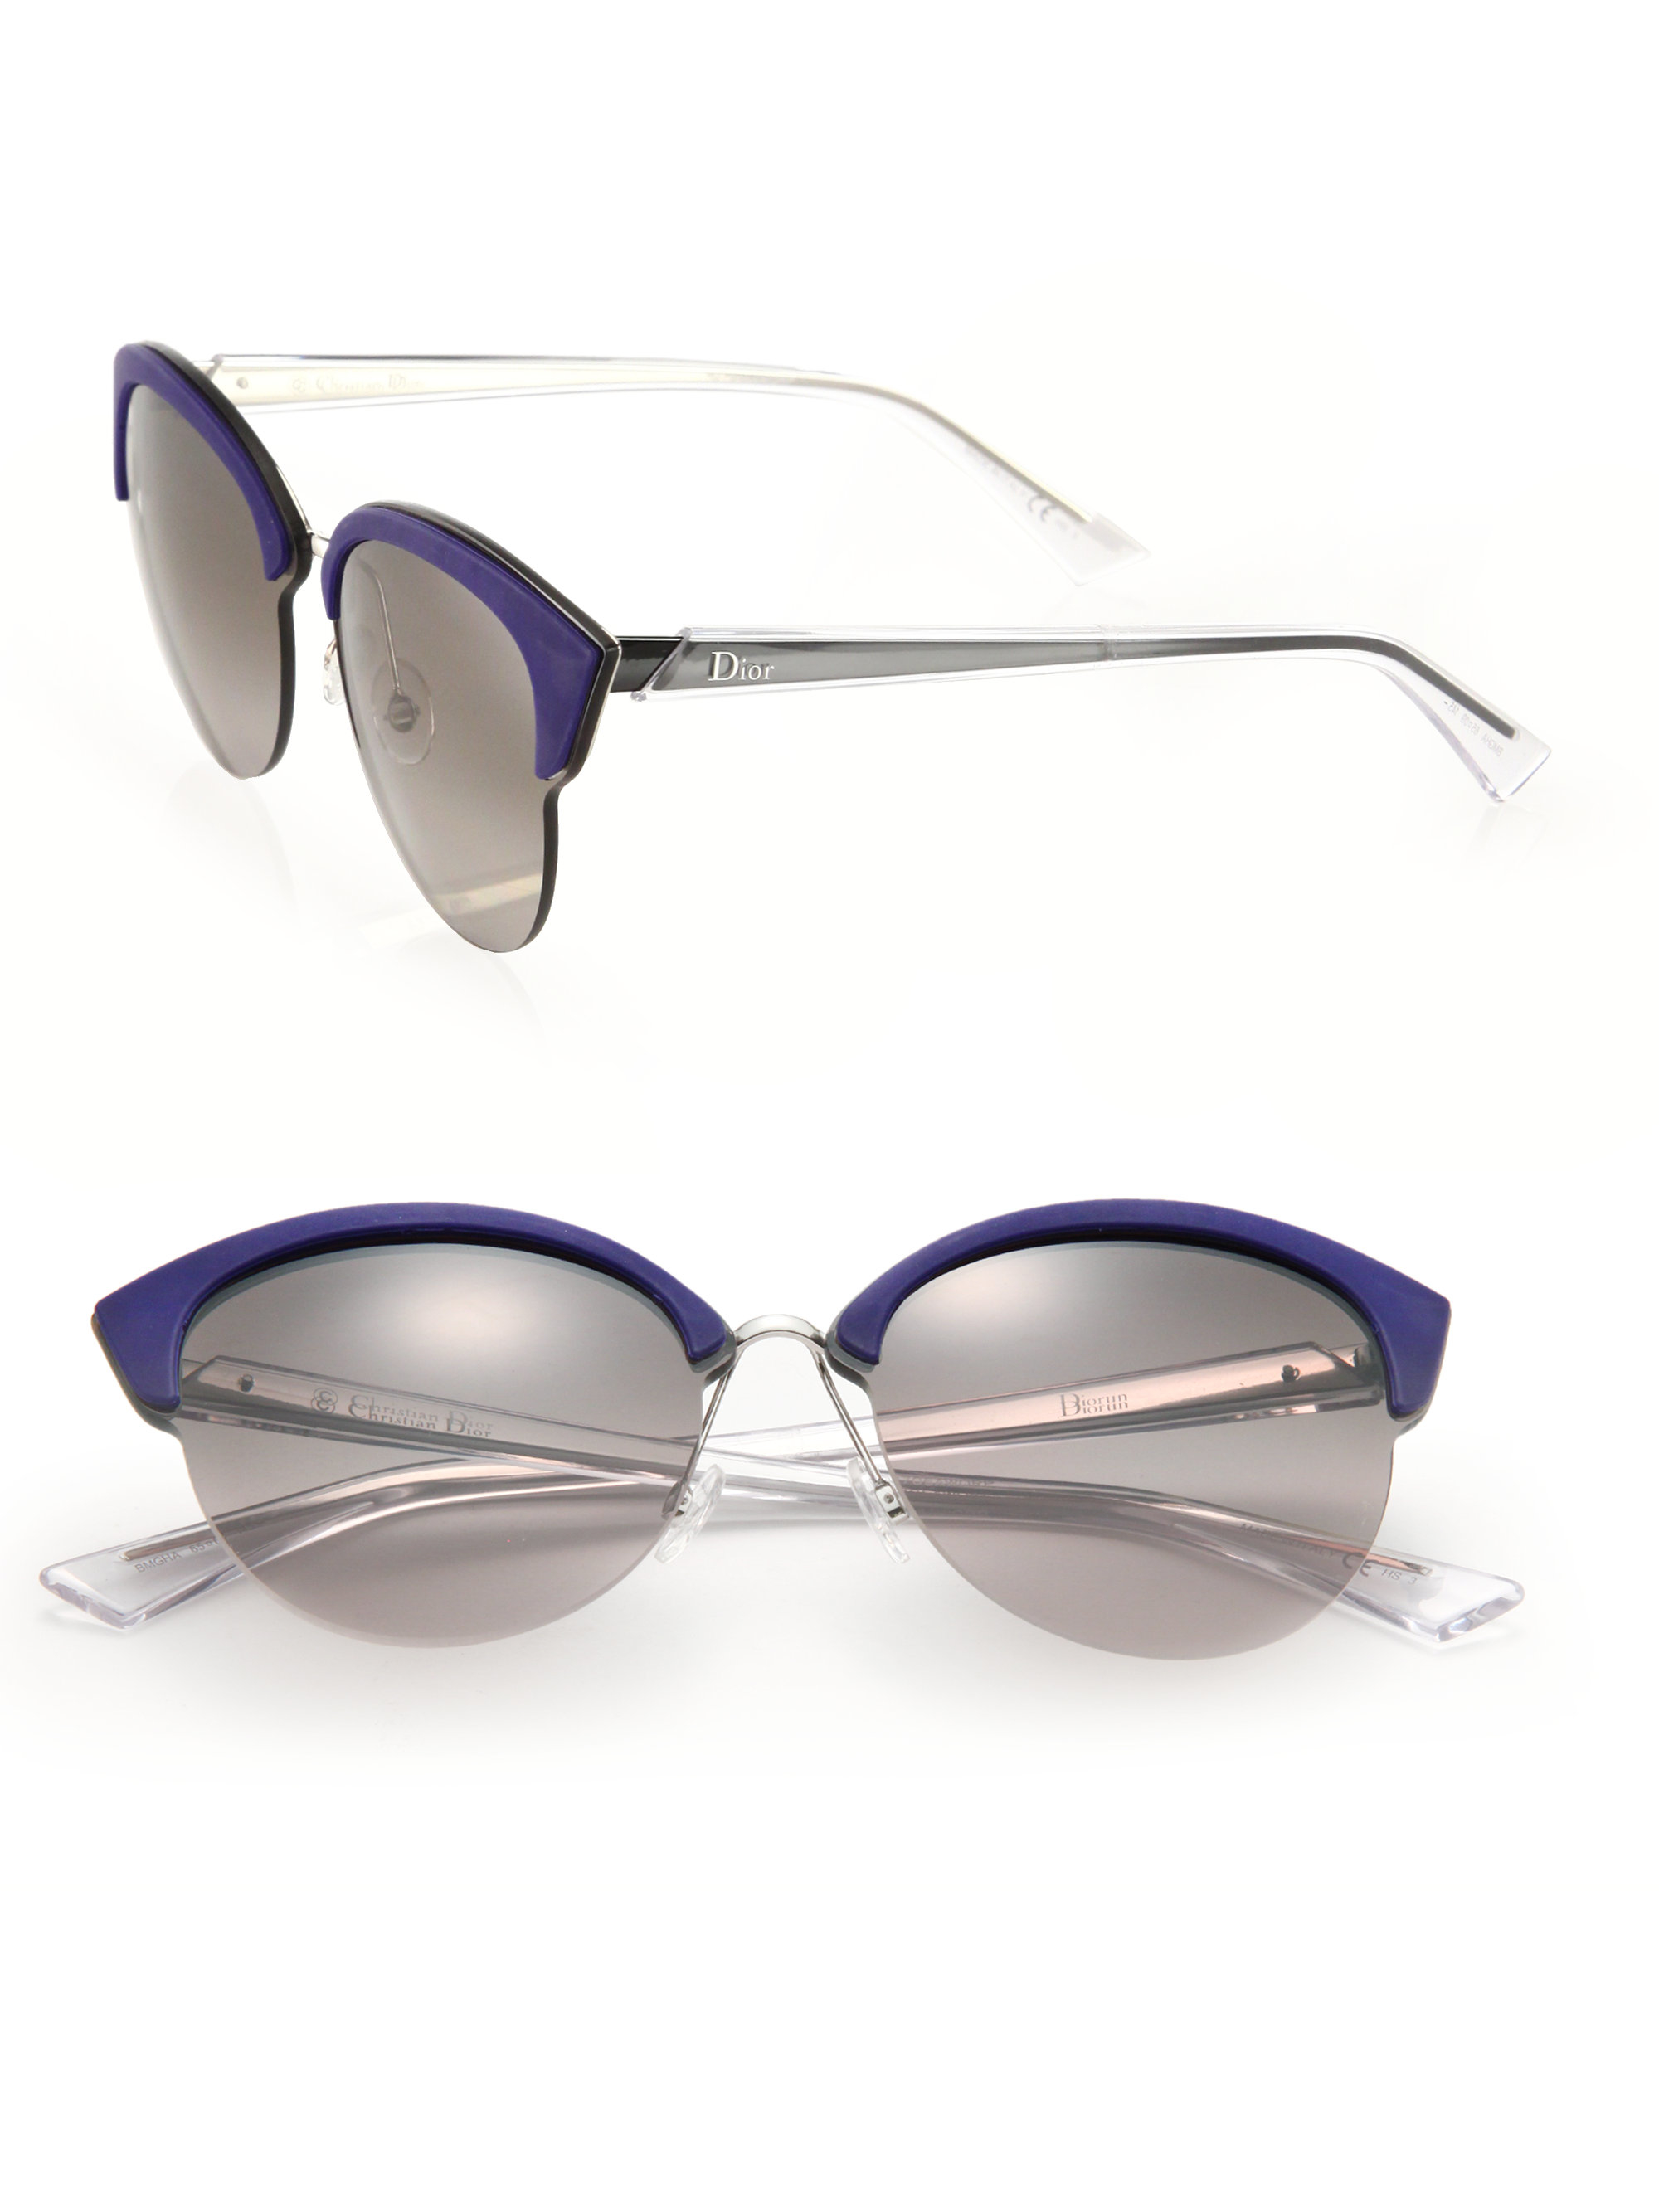 b6cc7dcac5 Dior Clubmaster Round 65mm Metal Sunglasses in Blue